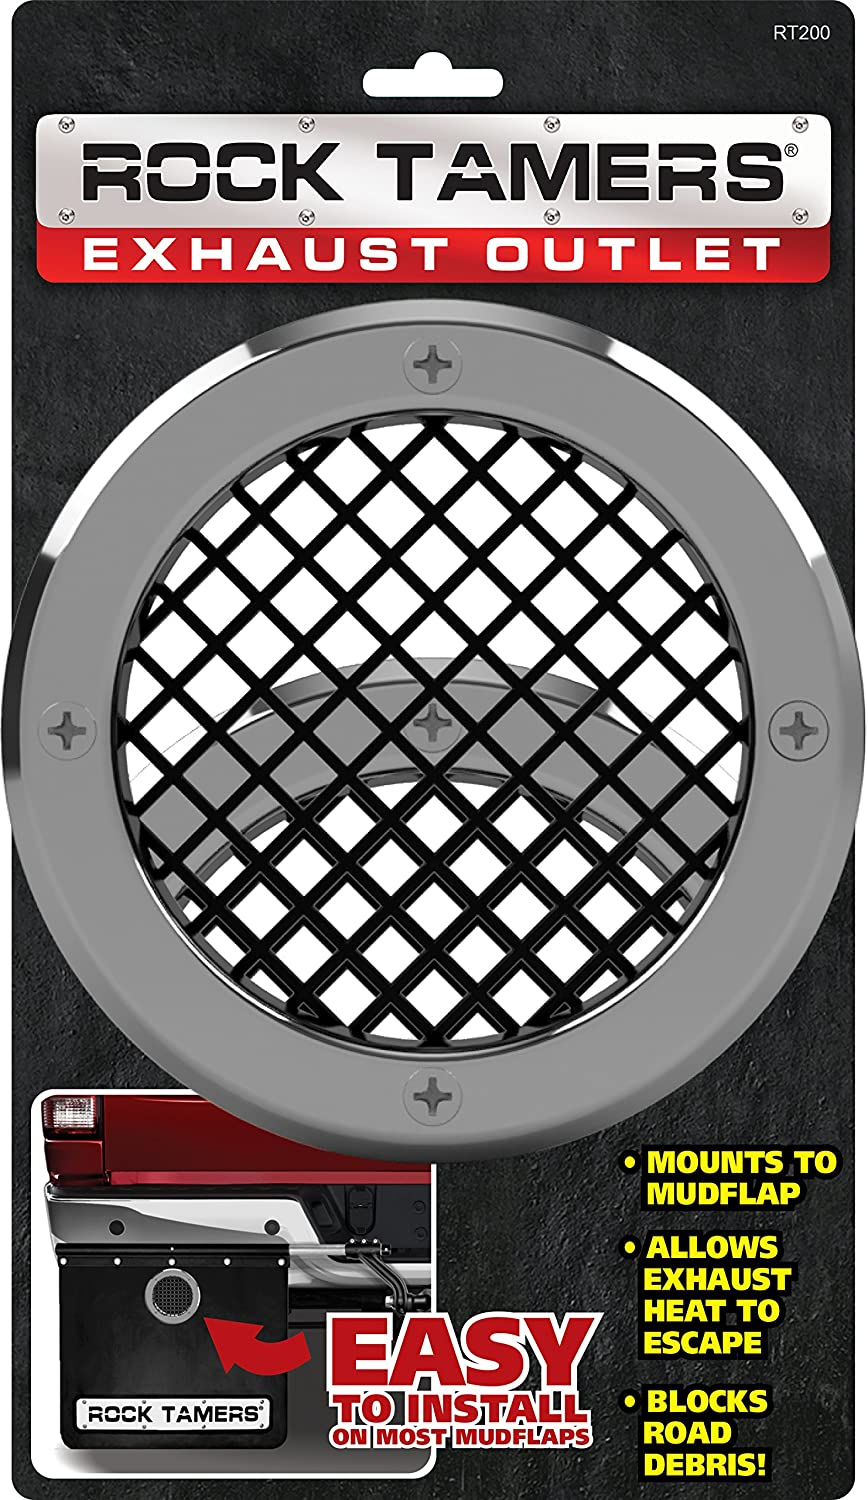 ROCK TAMERS RT200 Chrome/Black Exhaust Outlet, 2 Pack, 2 Pack